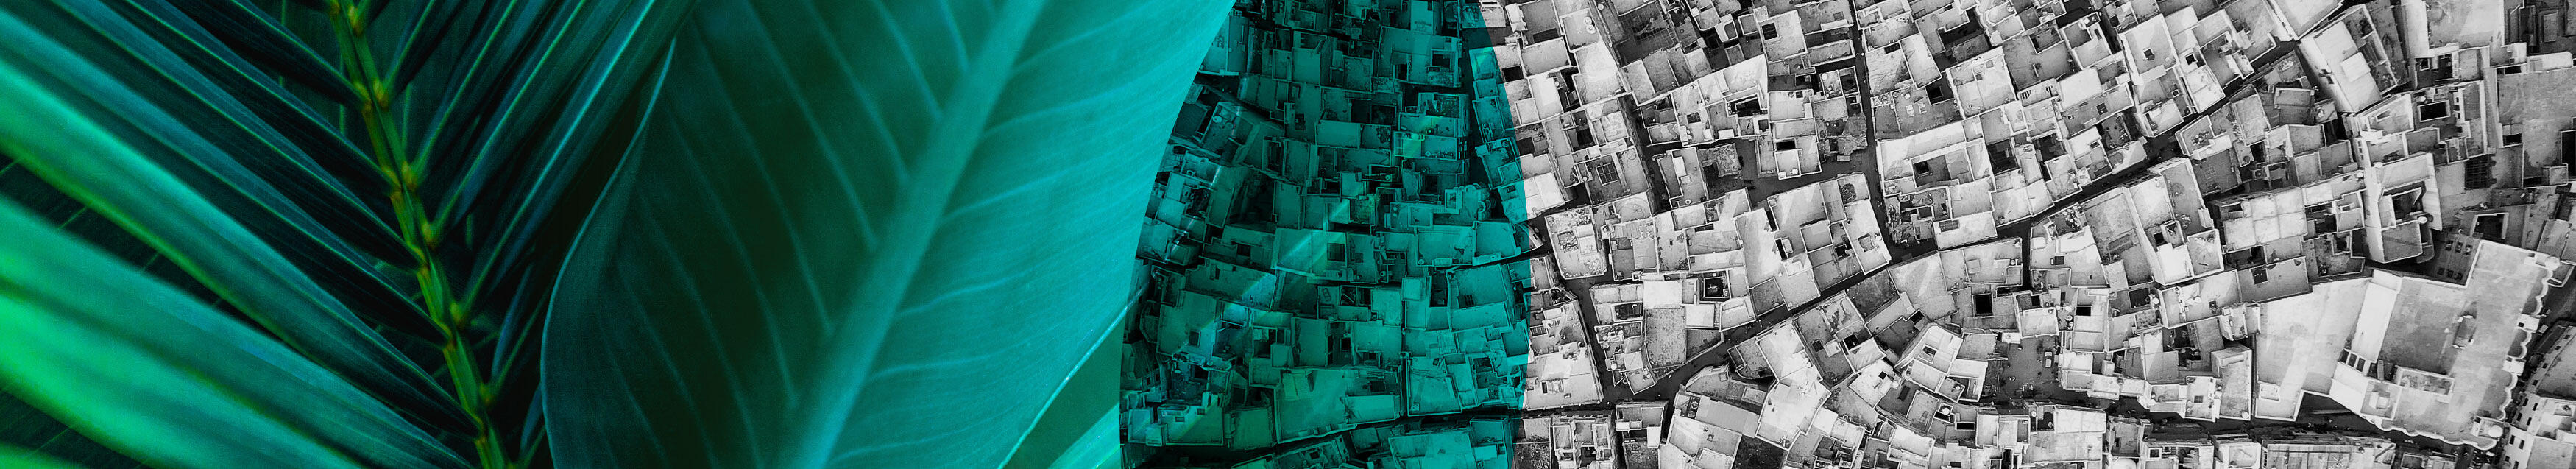 The banner across the top of the page shows a close up of palm leaves, overlapping with a aerial shot of a slum. As they overlap, they are very beautiful, and remind us of the connectedness between nature and humans, and how everything we do affects the balance.